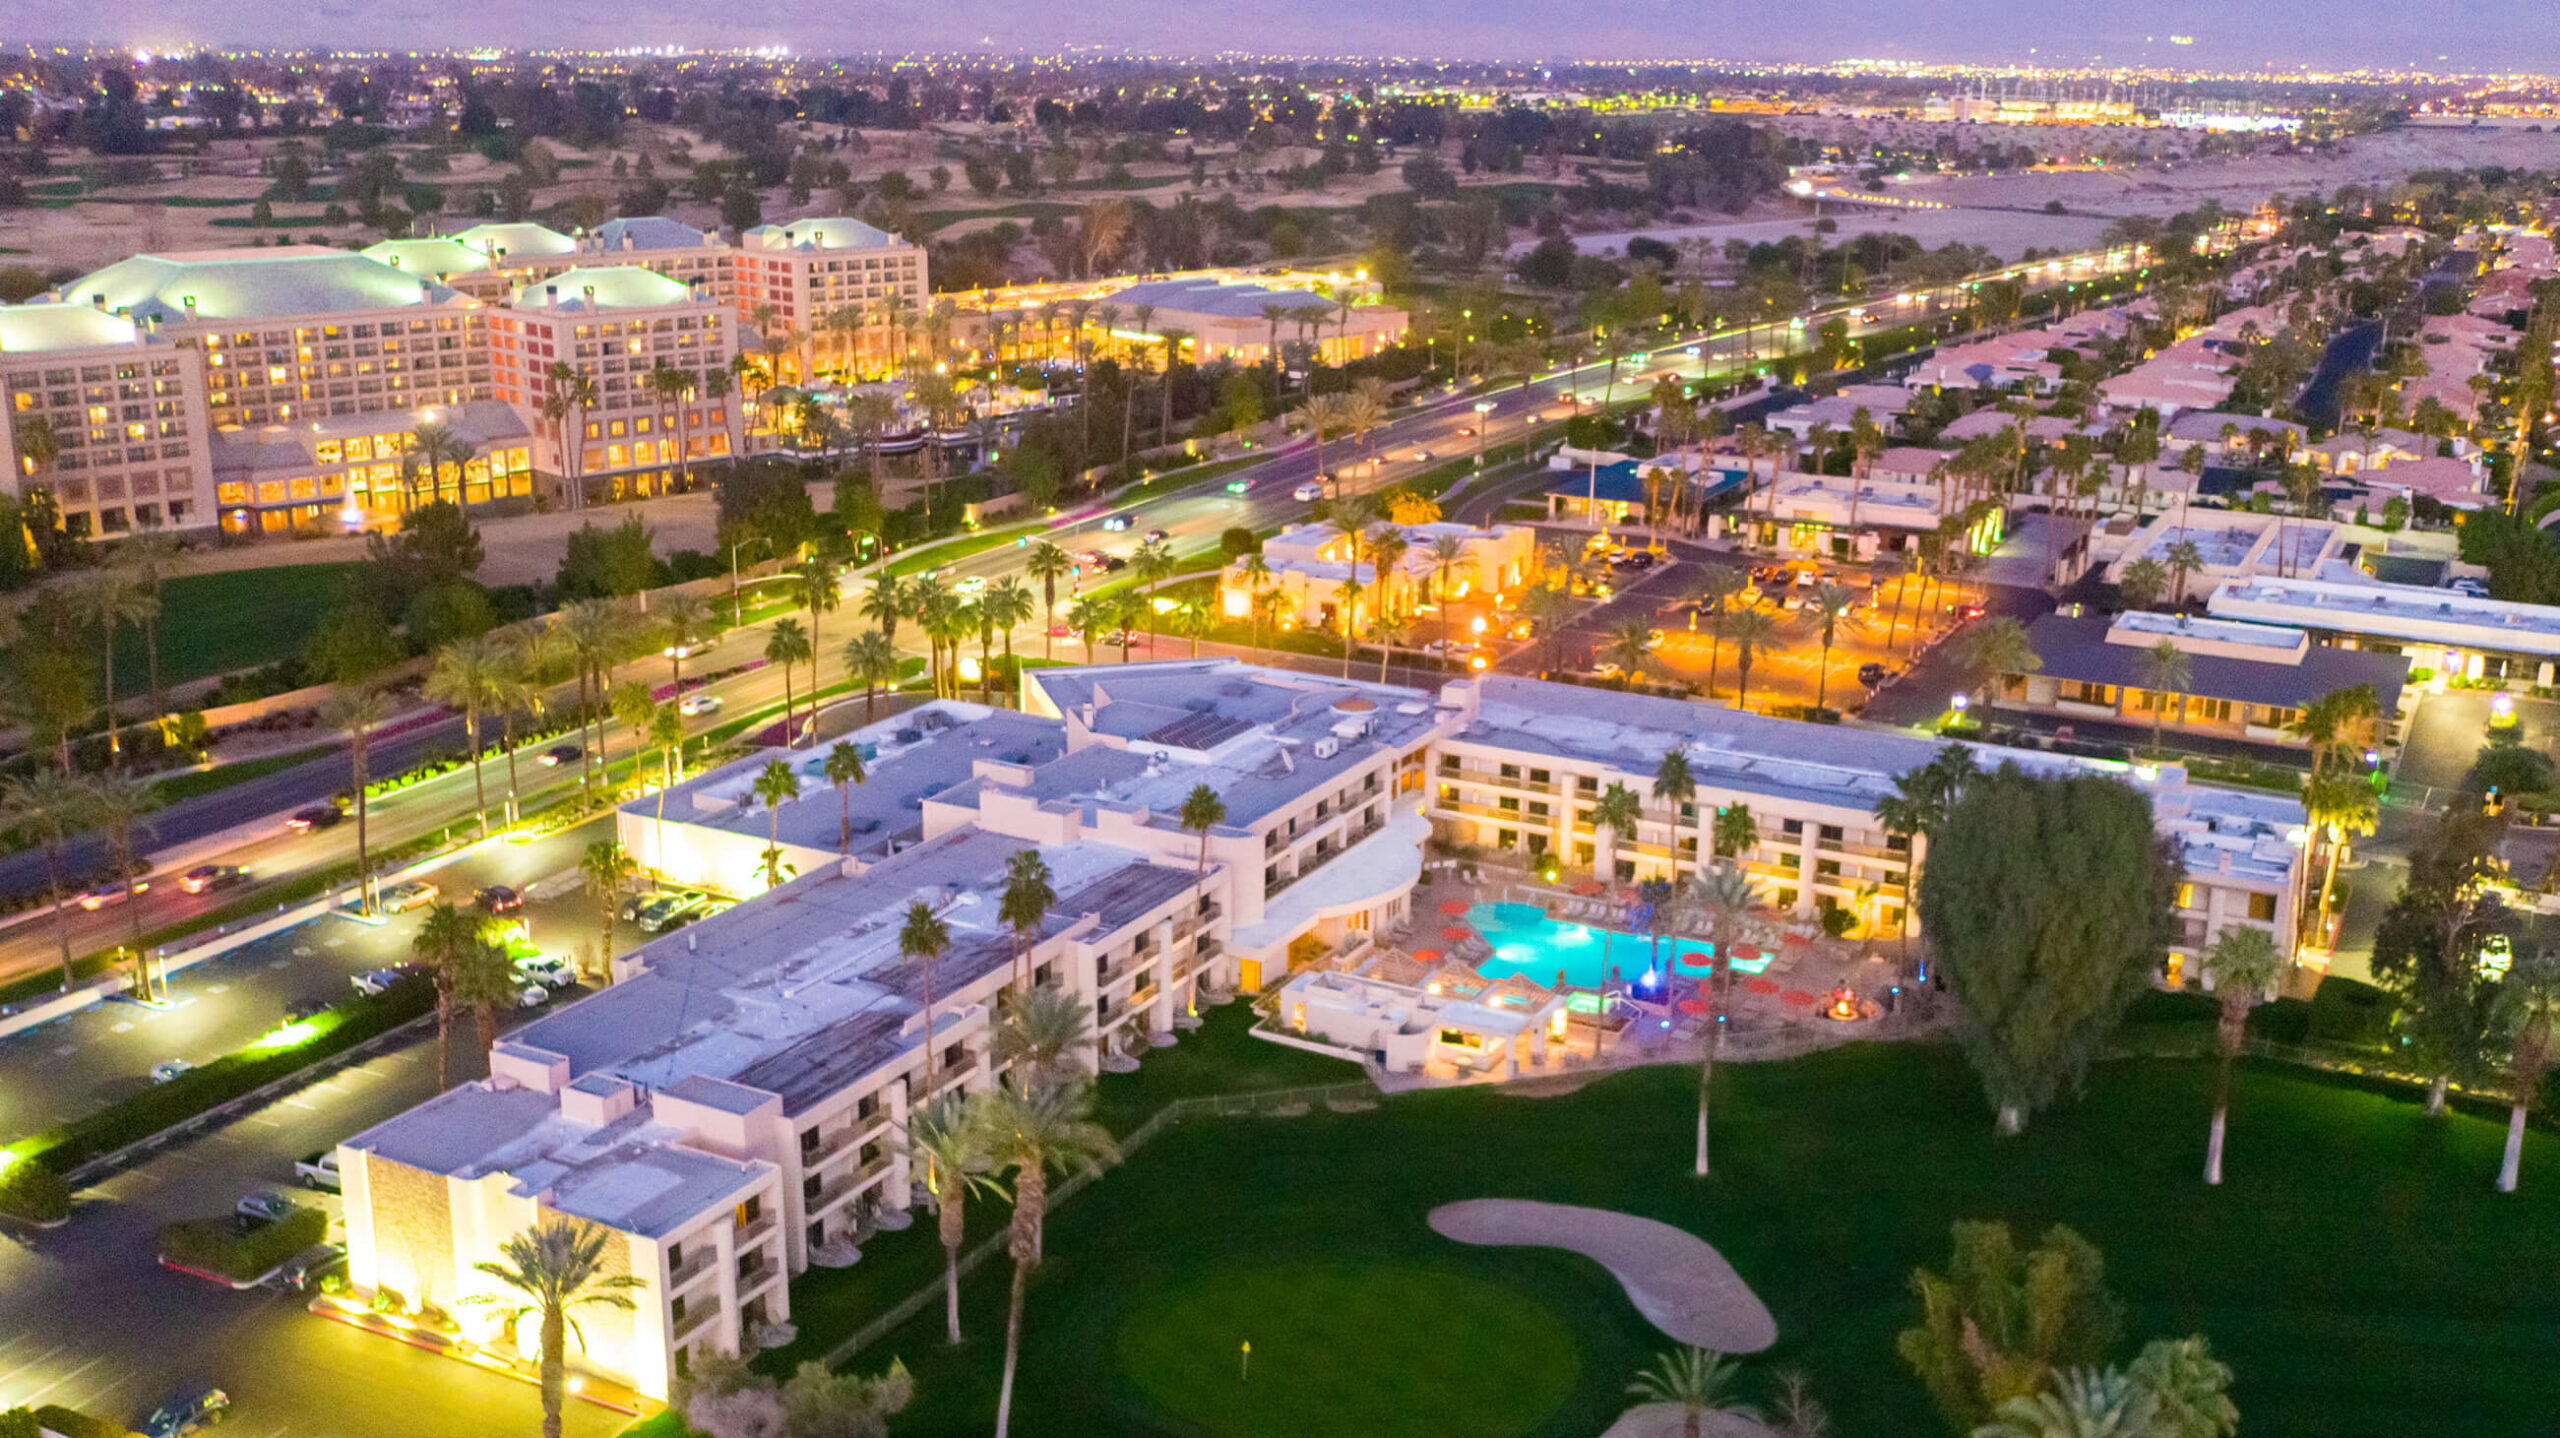 indian wells resort hotel drone photography aerial imagery